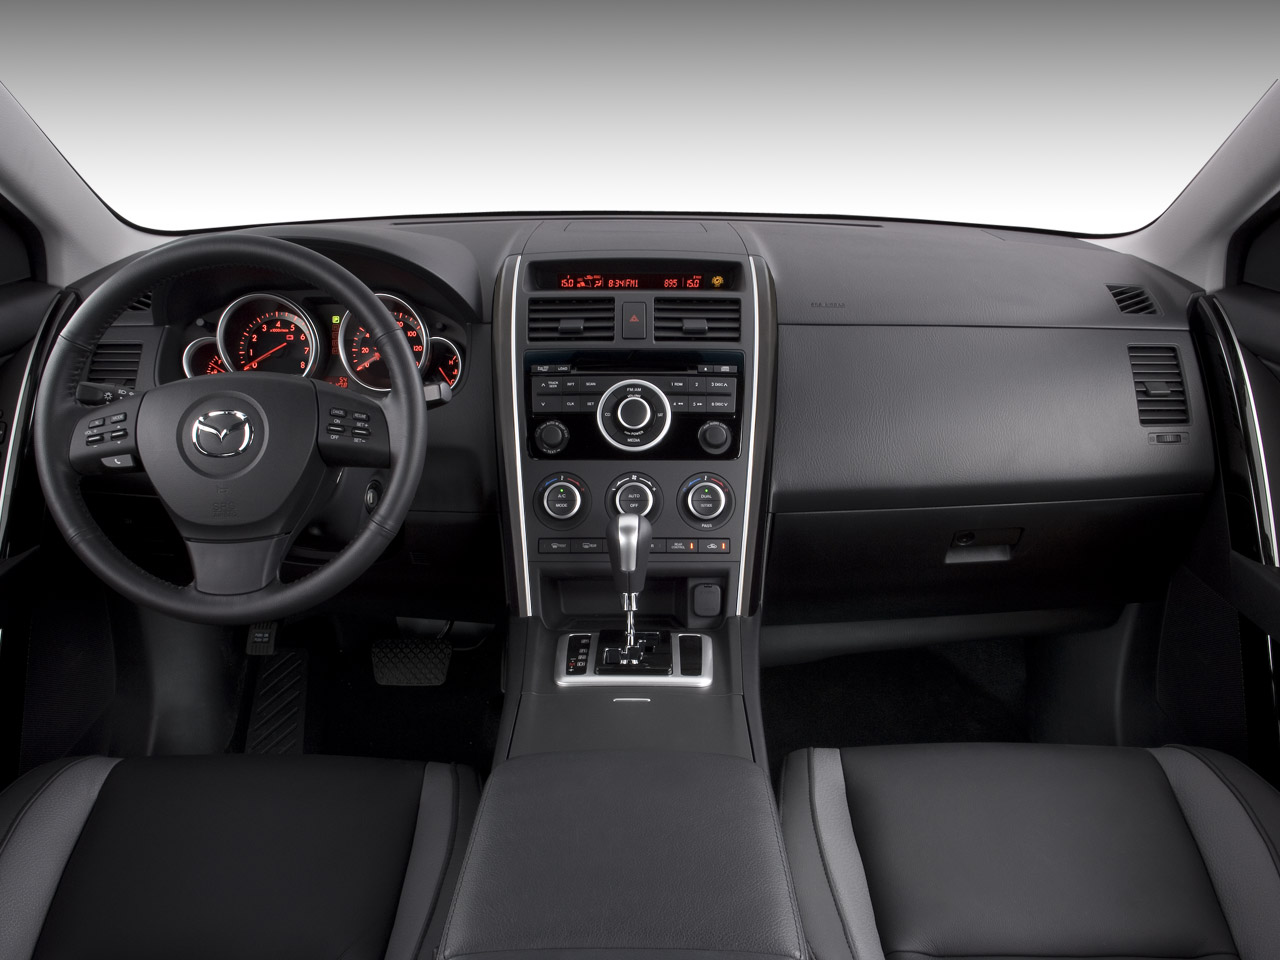 driven preview 2007 mazda cx 9 latest reviews road. Black Bedroom Furniture Sets. Home Design Ideas